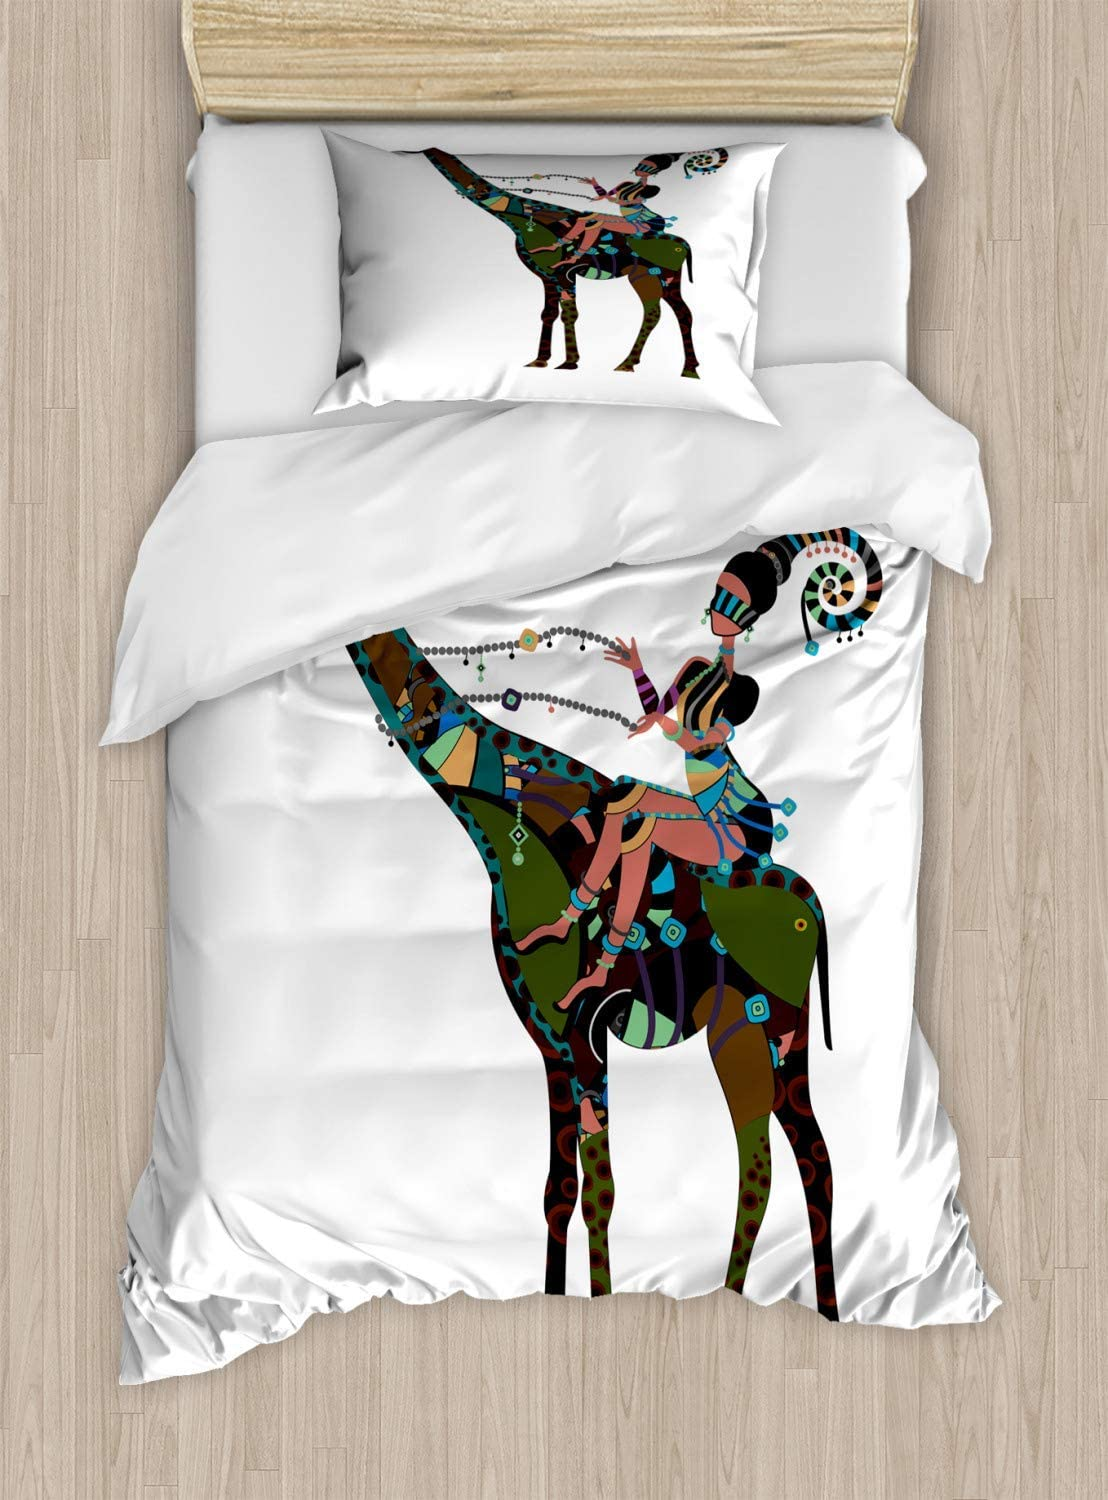 Folk Art Duvet Cover Set, Bed Sheets, Abstract Design Woman Riding a Giraffe in Indigenous Clothes, Decorative 3 Piece Bedding Set with 2 Pillow Sham, Queen Size, Multicolor